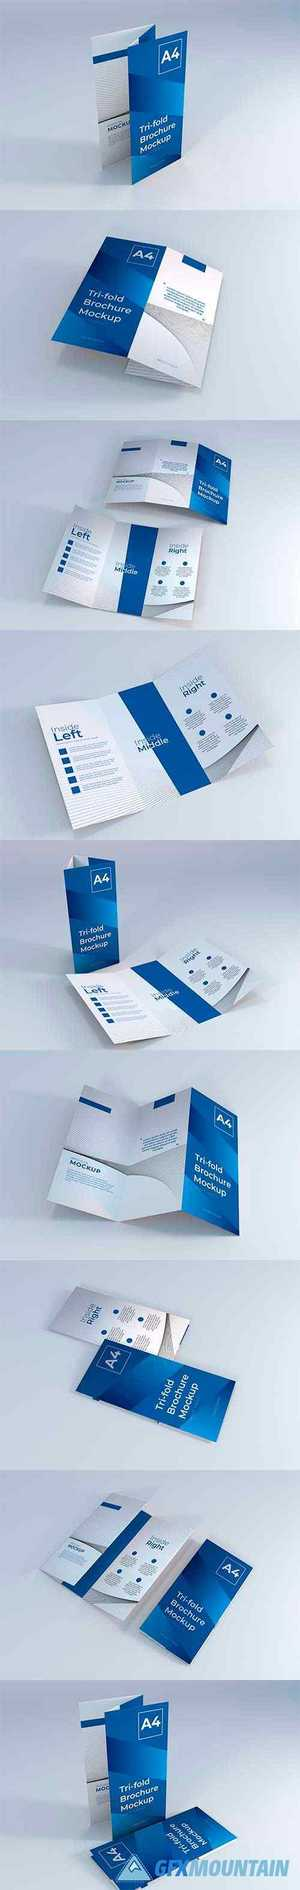 Realistic a4 trifold brochure mockup 2